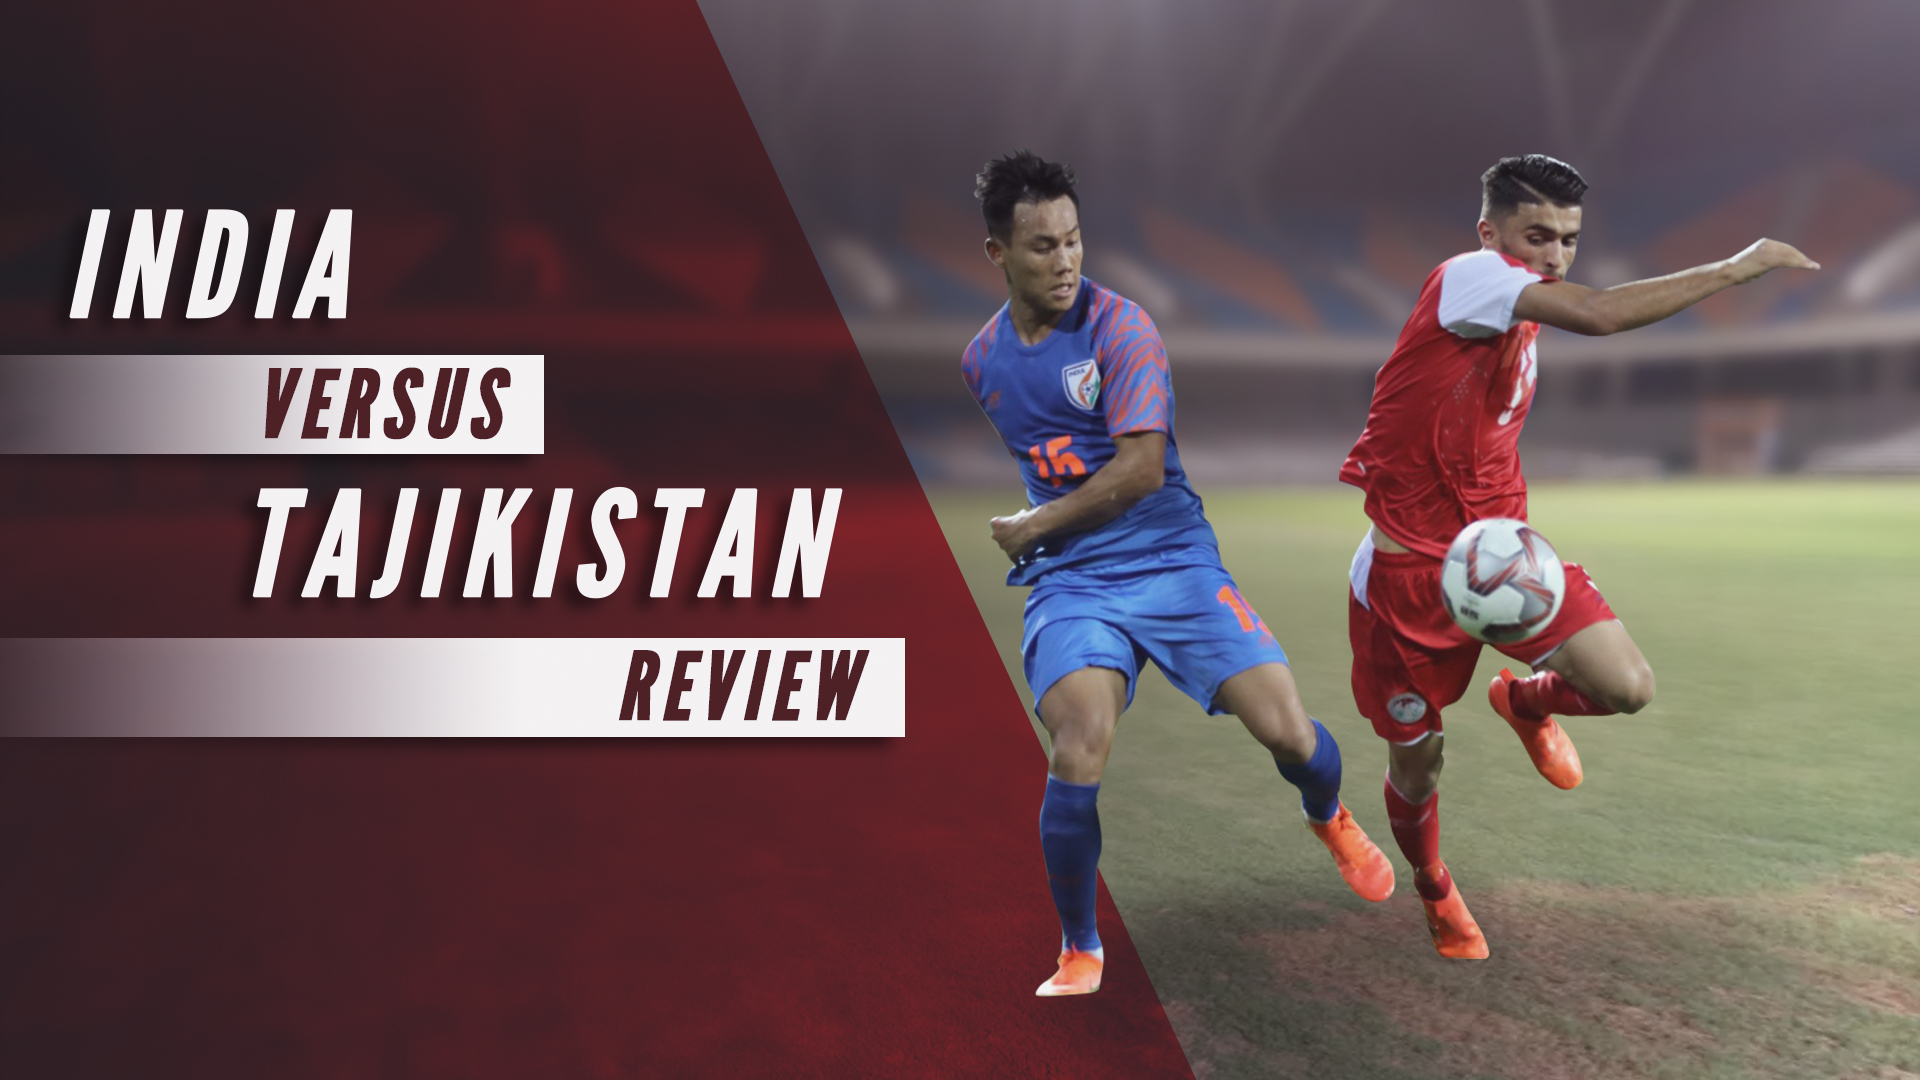 India vs Tajikistan Intercontinental Cup football review